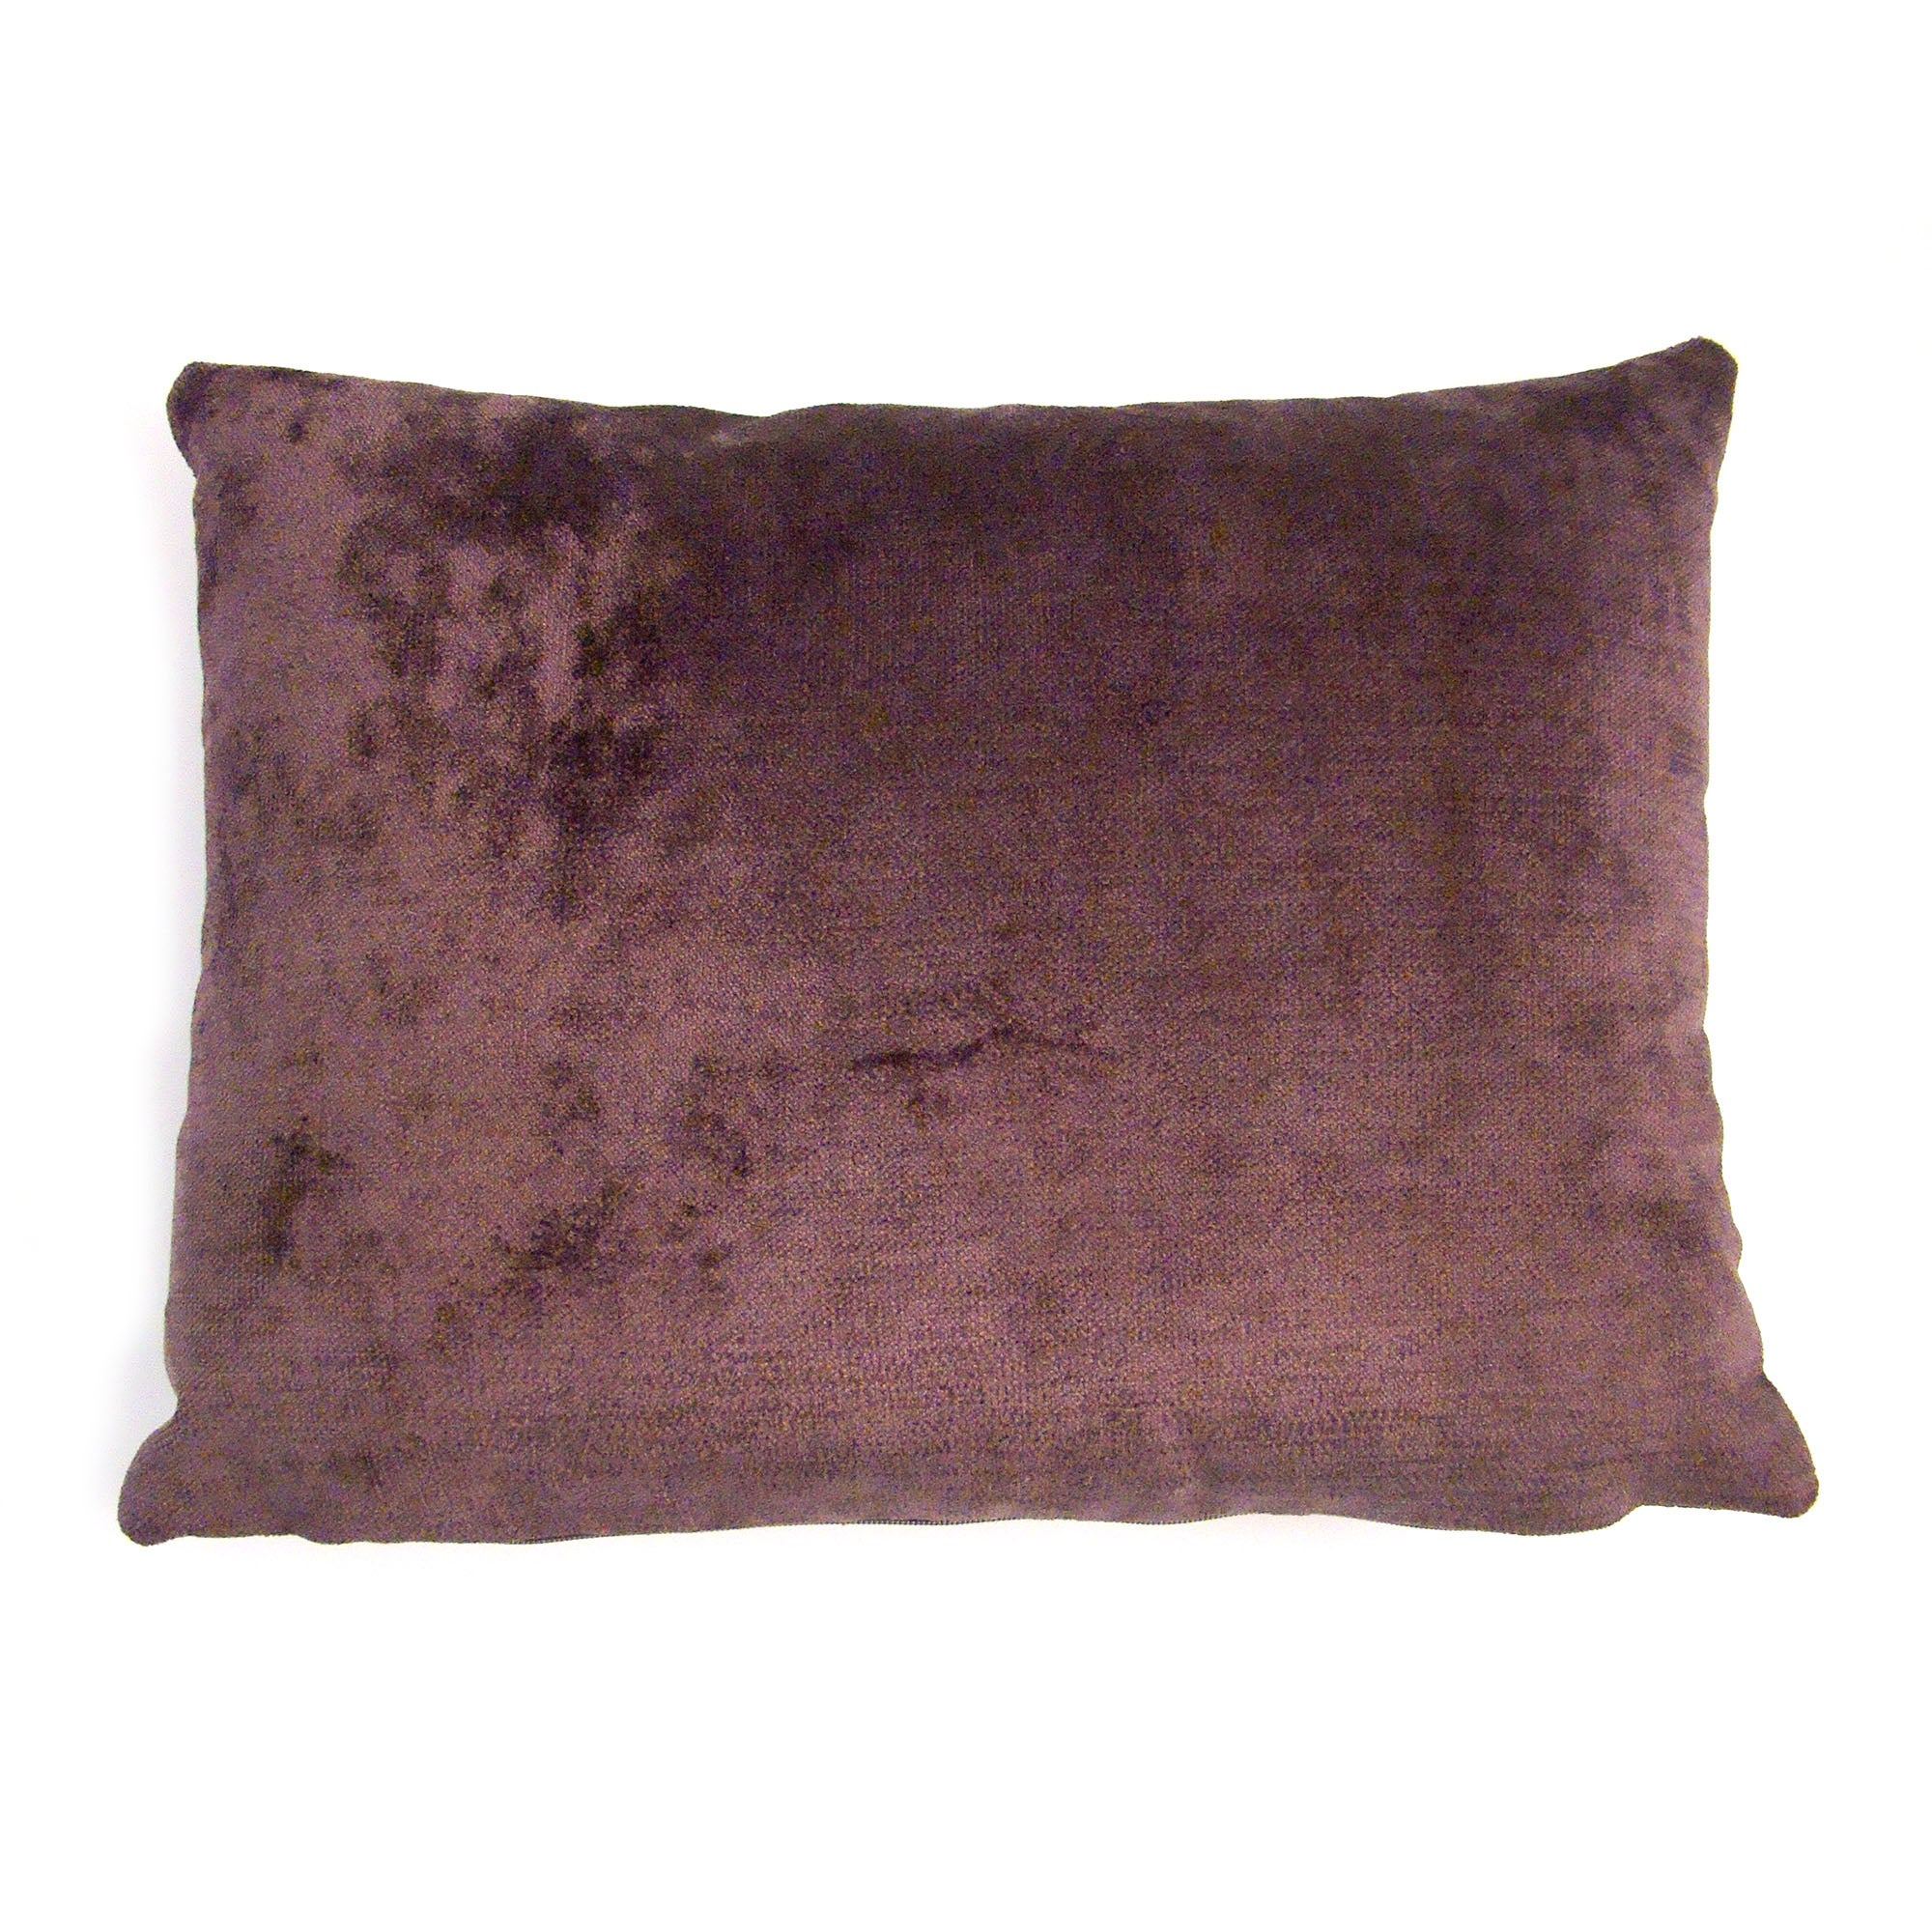 Velvet Boudoir Cushion Cover